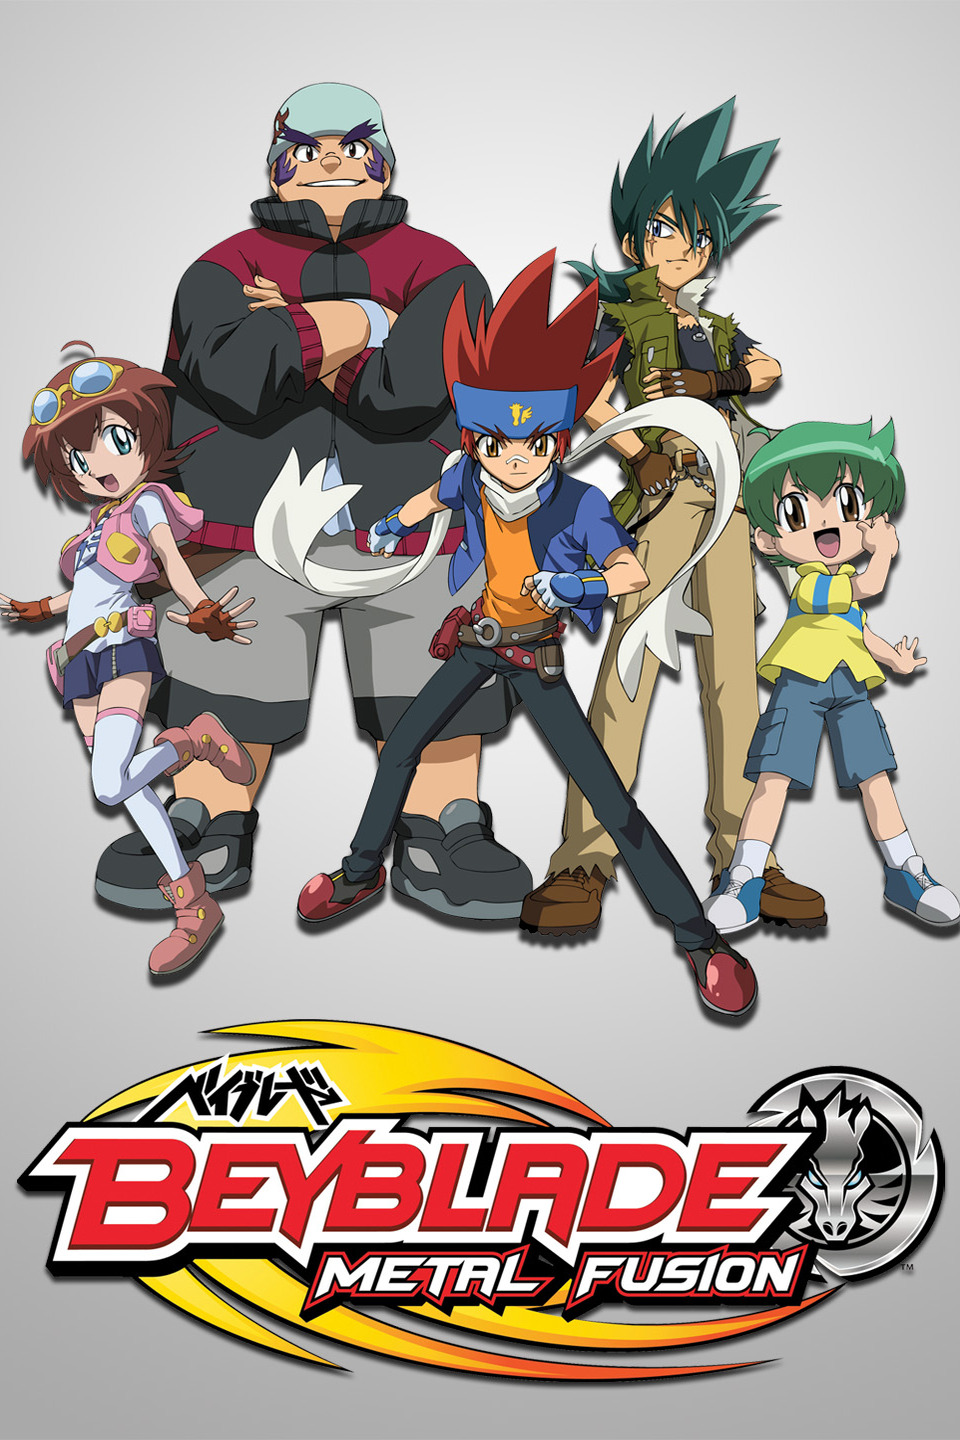 beyblade metal fusion Beyblade metal fusion episode 1 english dubbed online for free in high quality streaming anime beyblade metal fusion episode 1 english dubbed full episode in hd.